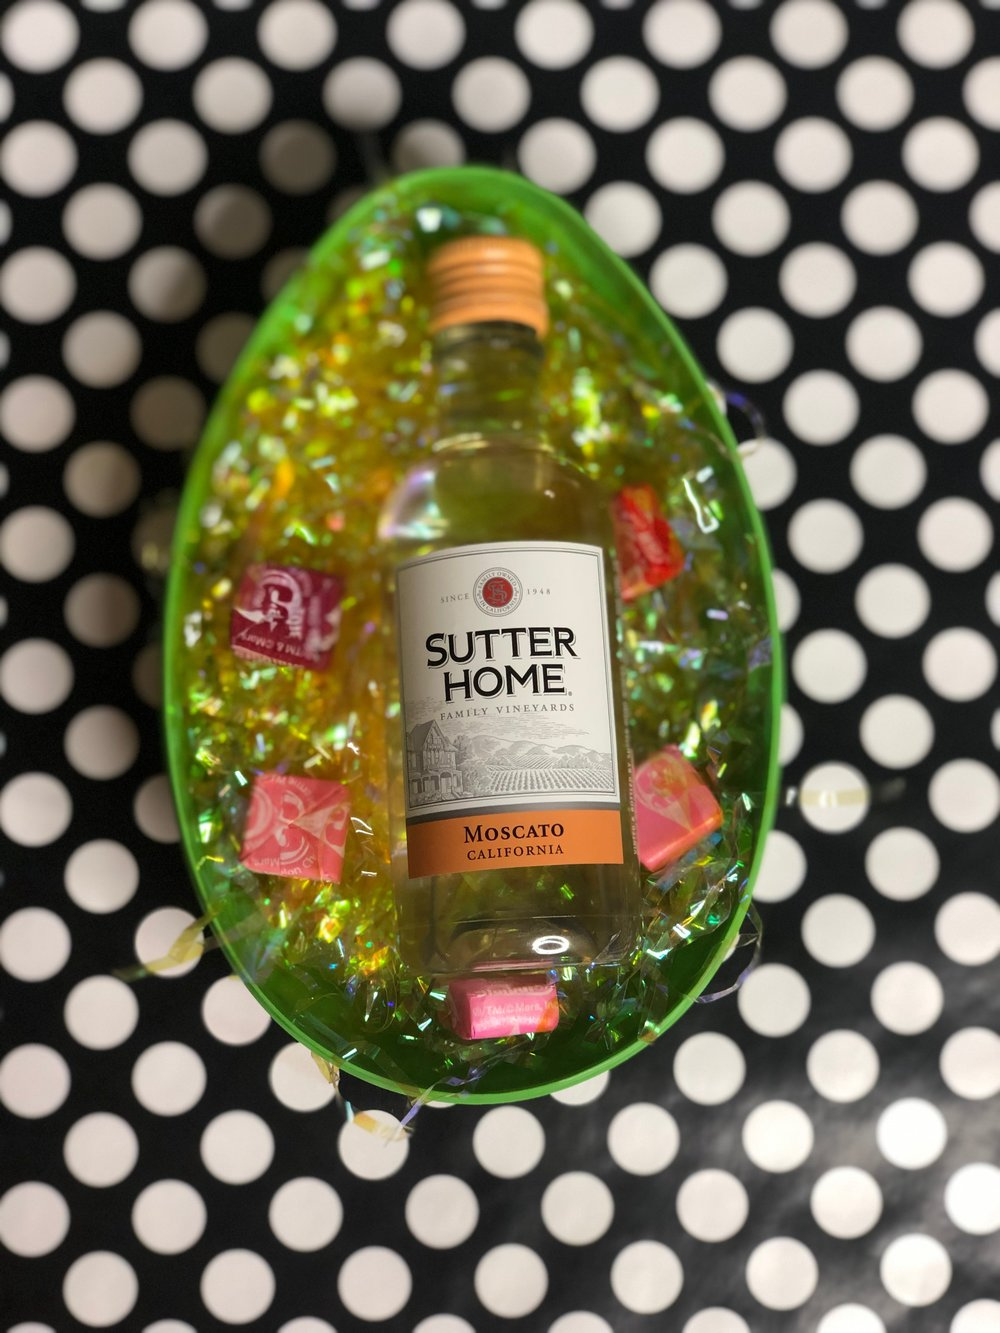 Step 3 - Place your mini Wine bottles in the plastic Easter Eggs.